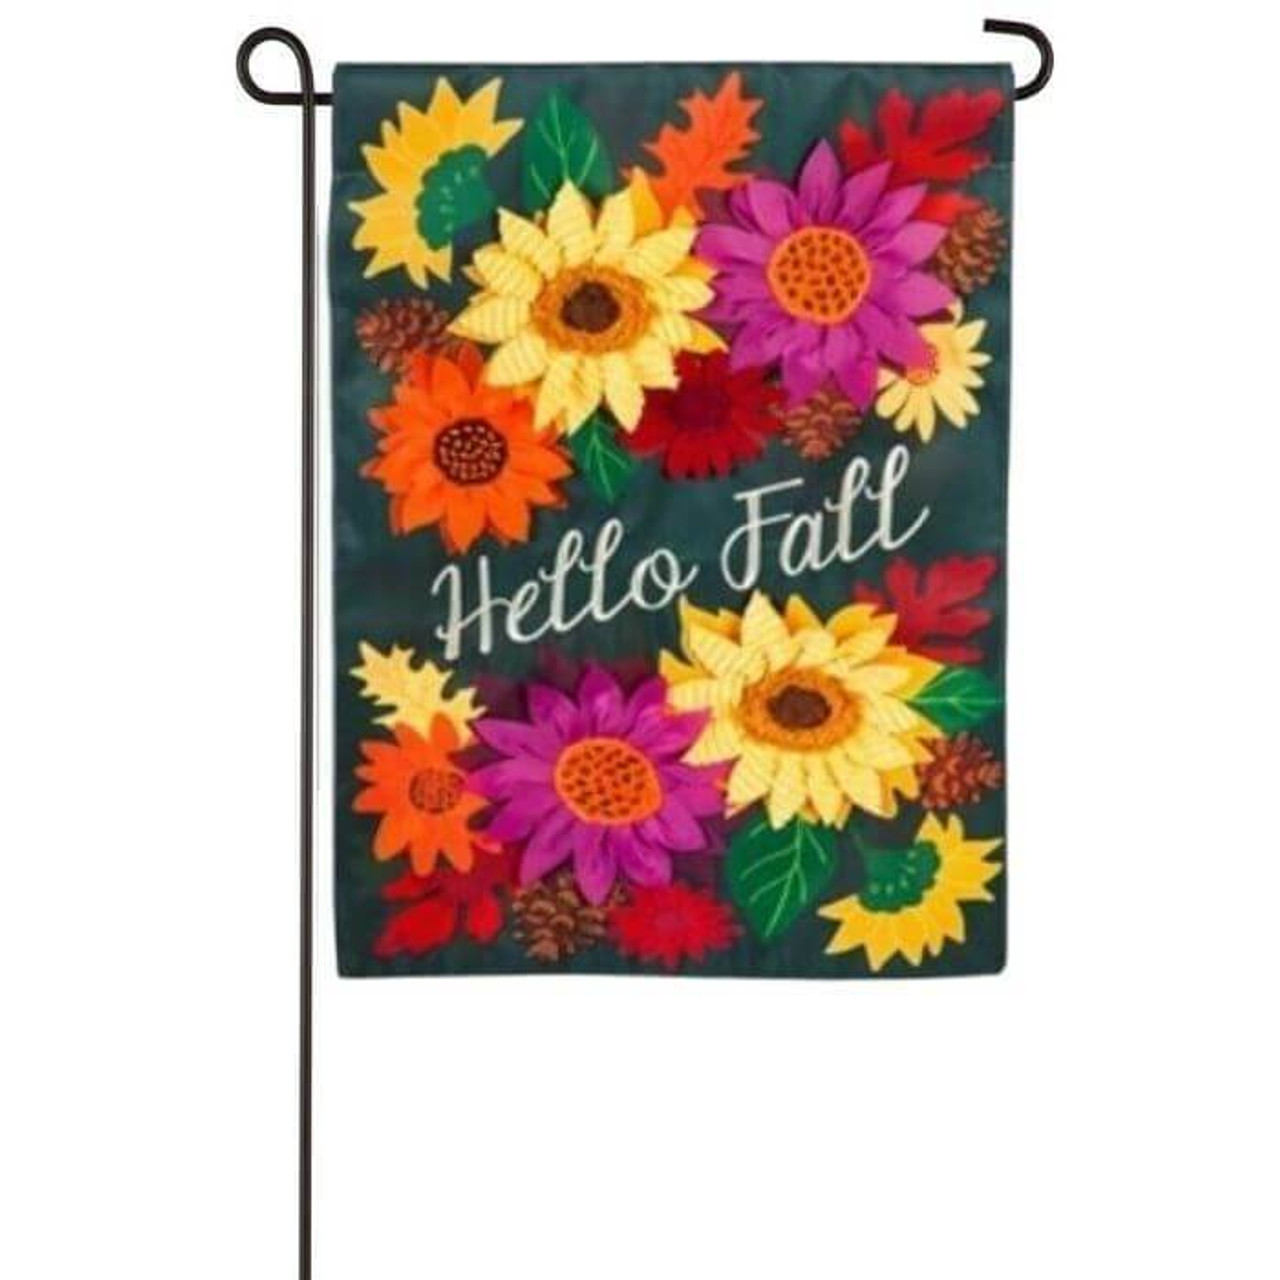 This Hello Fall Garden flag displays an embroidered 'Hello Fall' white text at the center of the flag. There are appliquéd sunflowers and leaves in various colors surrounding the text. Flower colors are orange, yellow, red, and magenta. Leaf colors are green, orange, and red. The background of the flag is black. The flag is displayed on a black garden pole sold separately.